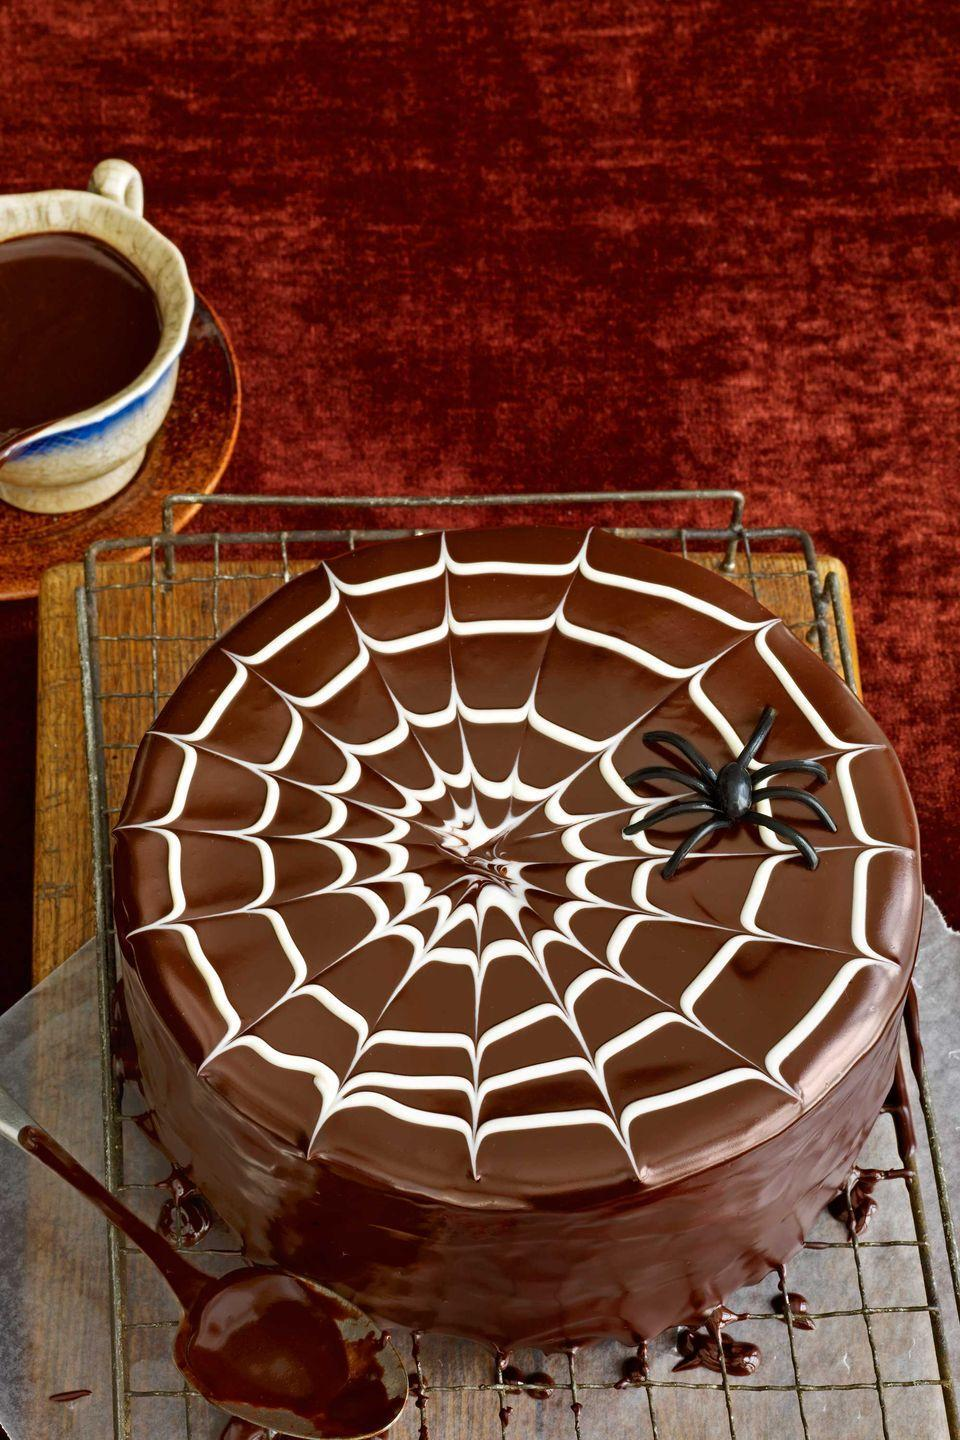 """<p>For a wickedly good web, pour Chocolate Glaze over the top of an uniced layer cake. Spread the glaze over the cake's edges and smooth the sides. Fill a small piping bag with three to four tablespoons of melted white chocolate, then starting at the center of the top of the cake, pipe the white chocolate in a spiral. Drag a toothpick from the center of the spiral to the cake's edge. Repeat every 1.5 inches to create a web effect.</p><p><strong><a href=""""https://www.countryliving.com/food-drinks/recipes/a2424/chocolate-glaze/"""" rel=""""nofollow noopener"""" target=""""_blank"""" data-ylk=""""slk:Get recipe for chocolate glaze"""" class=""""link rapid-noclick-resp"""">Get recipe for chocolate glaze</a>.</strong></p>"""